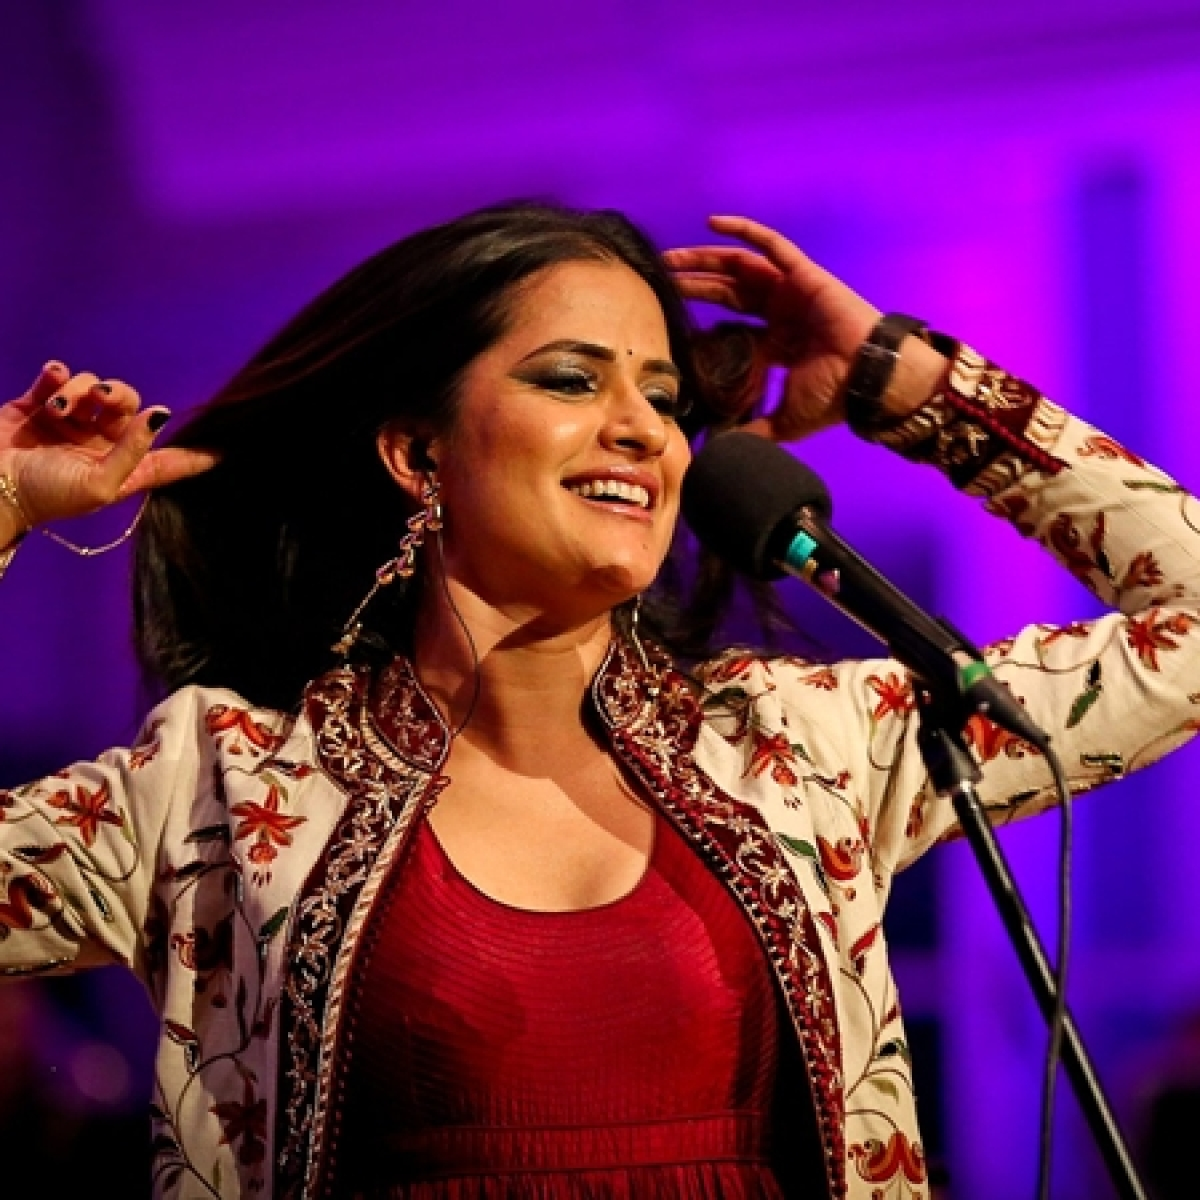 Sona Mohapatra won't shut up